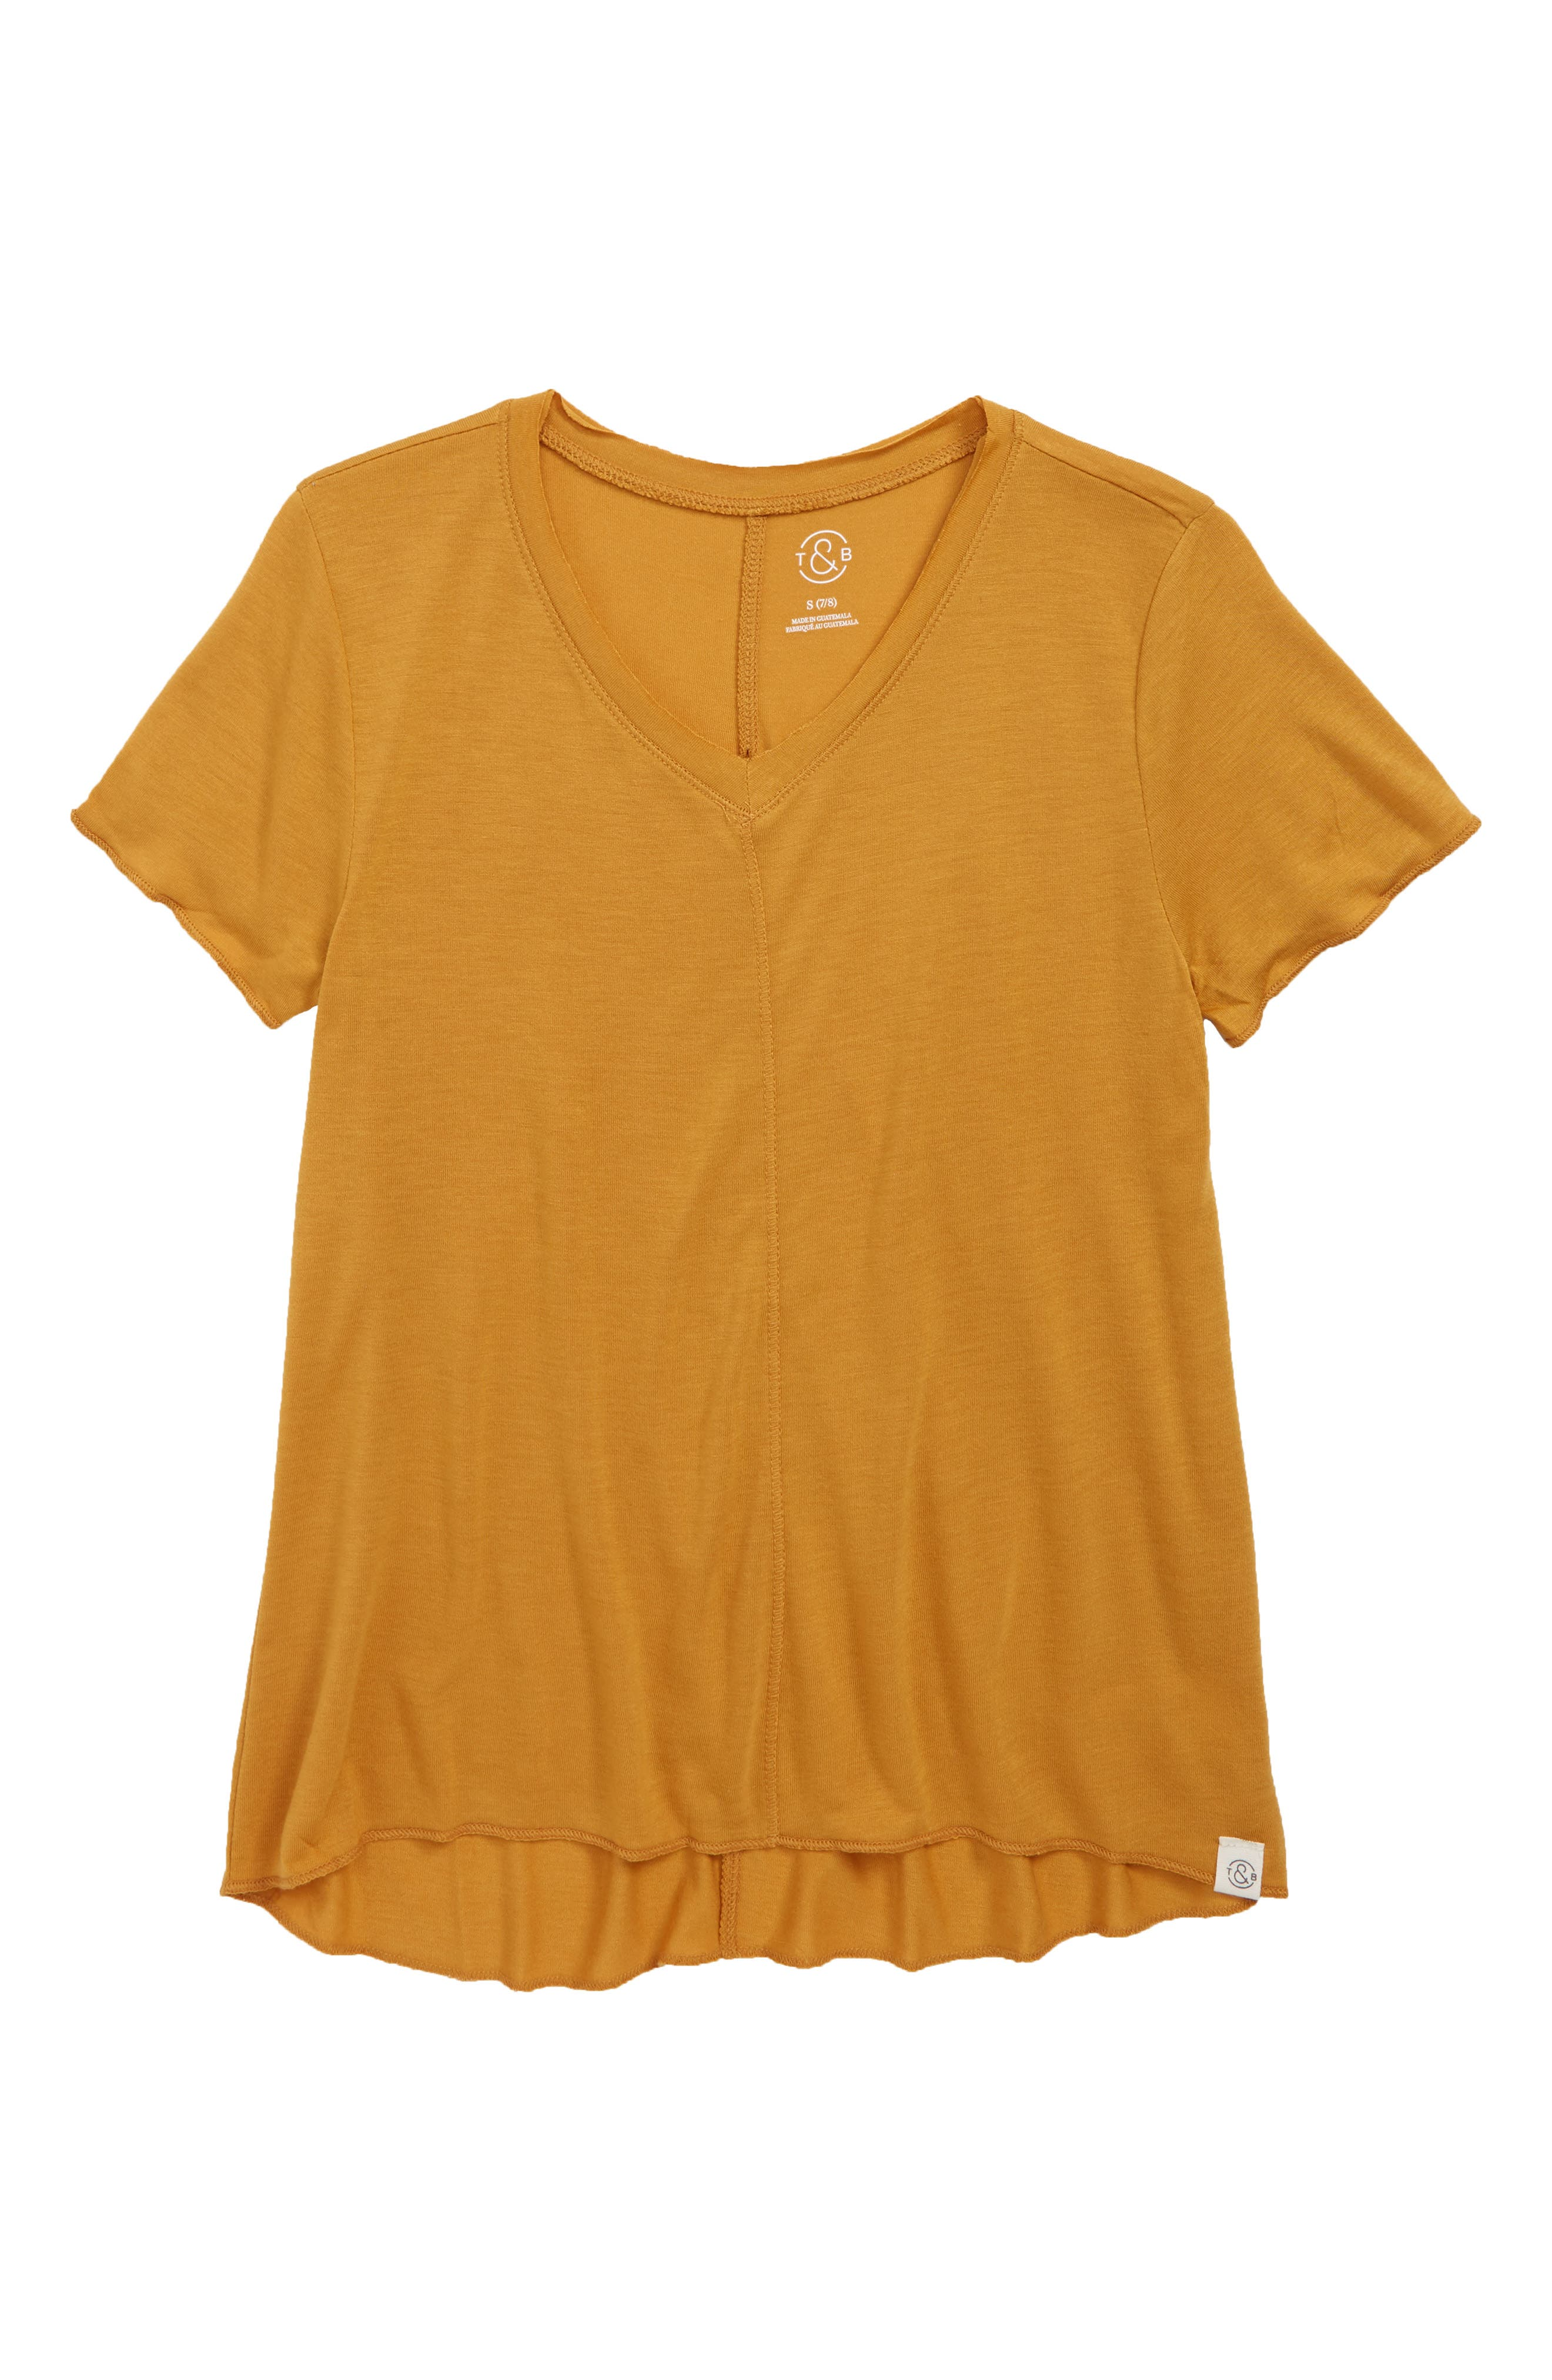 TREASURE & BOND, Easy Swing Tee, Main thumbnail 1, color, YELLOW SPRUCE